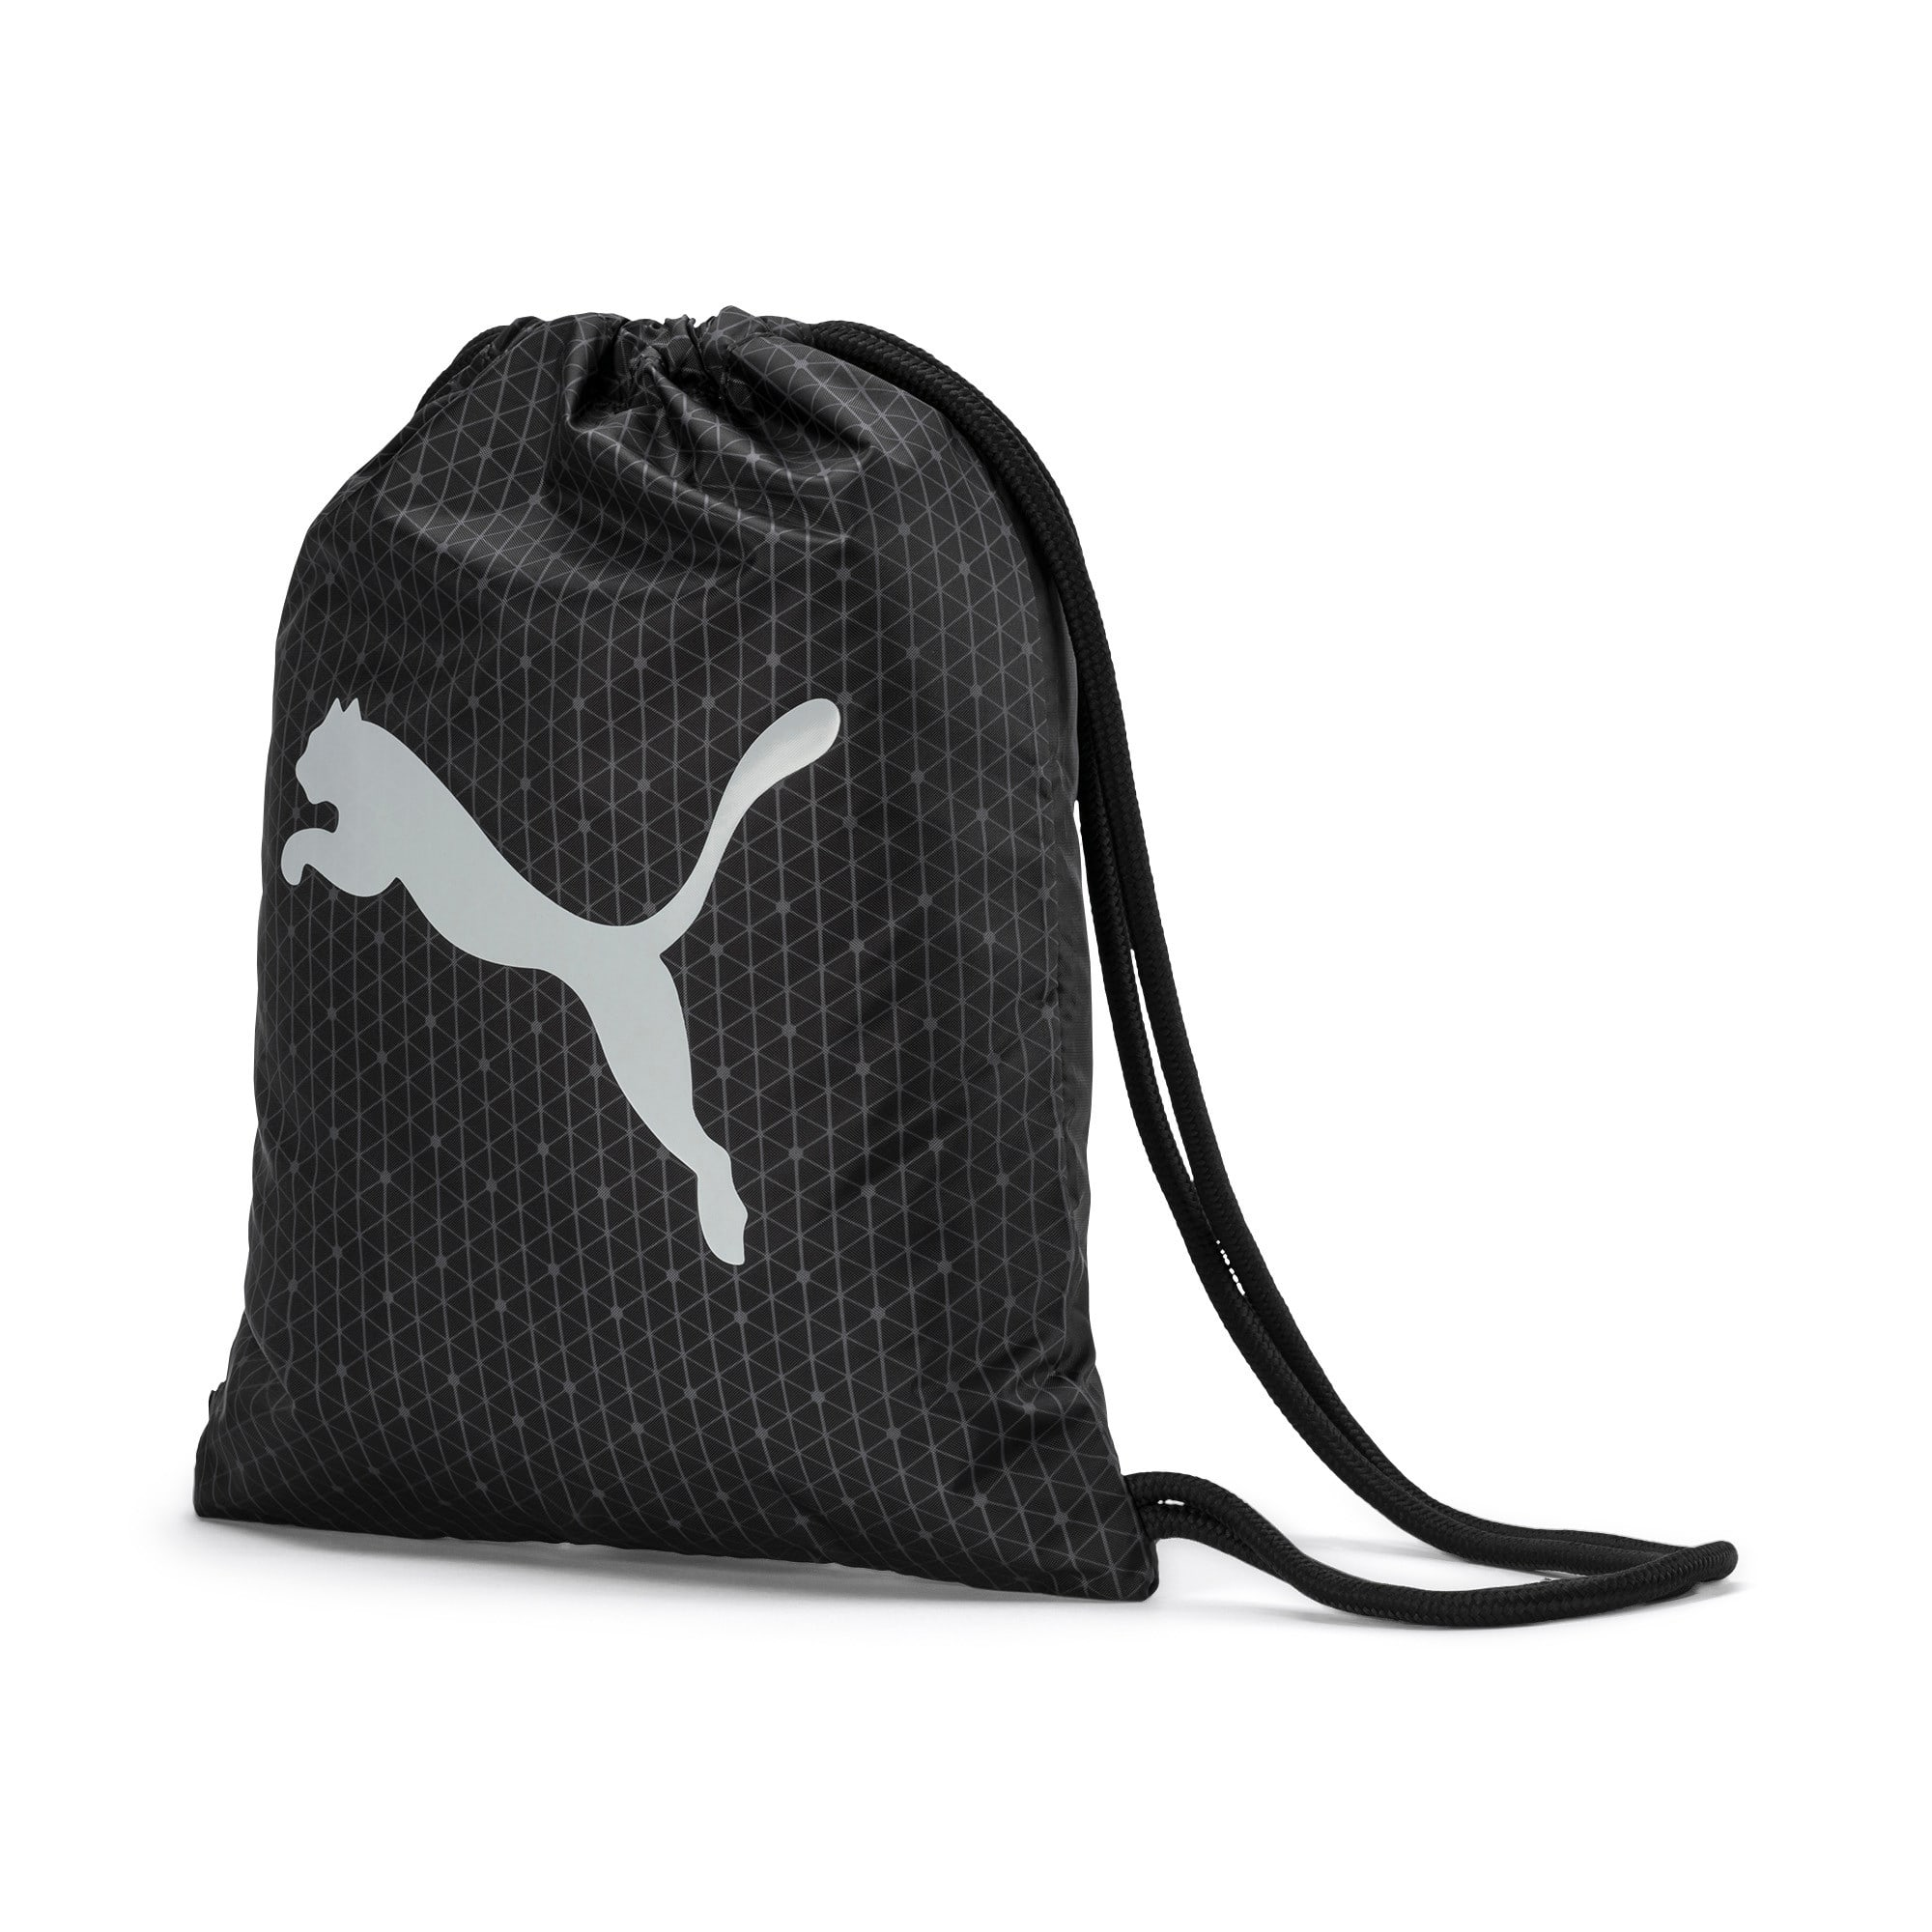 Thumbnail 1 of Beta Gym Bag, Puma Black-CASTLEROCK, medium-IND